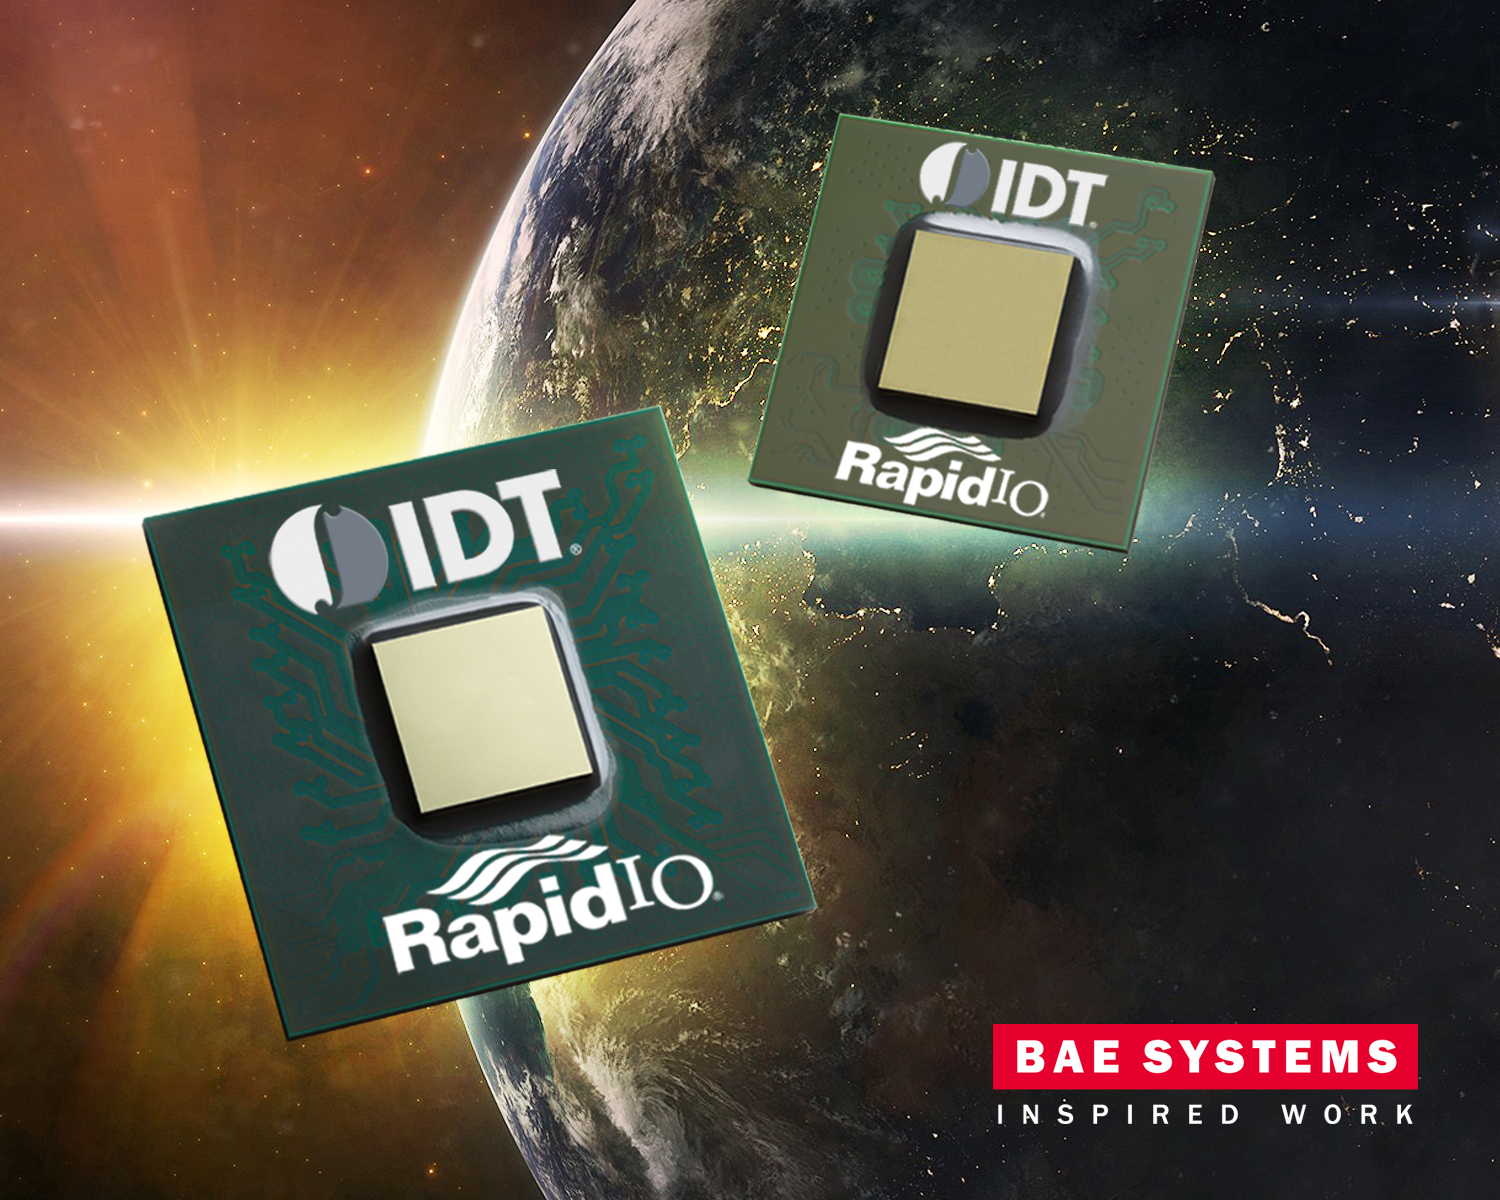 Bae Systems And Idt Develop New Space Grade Chip To Speed And